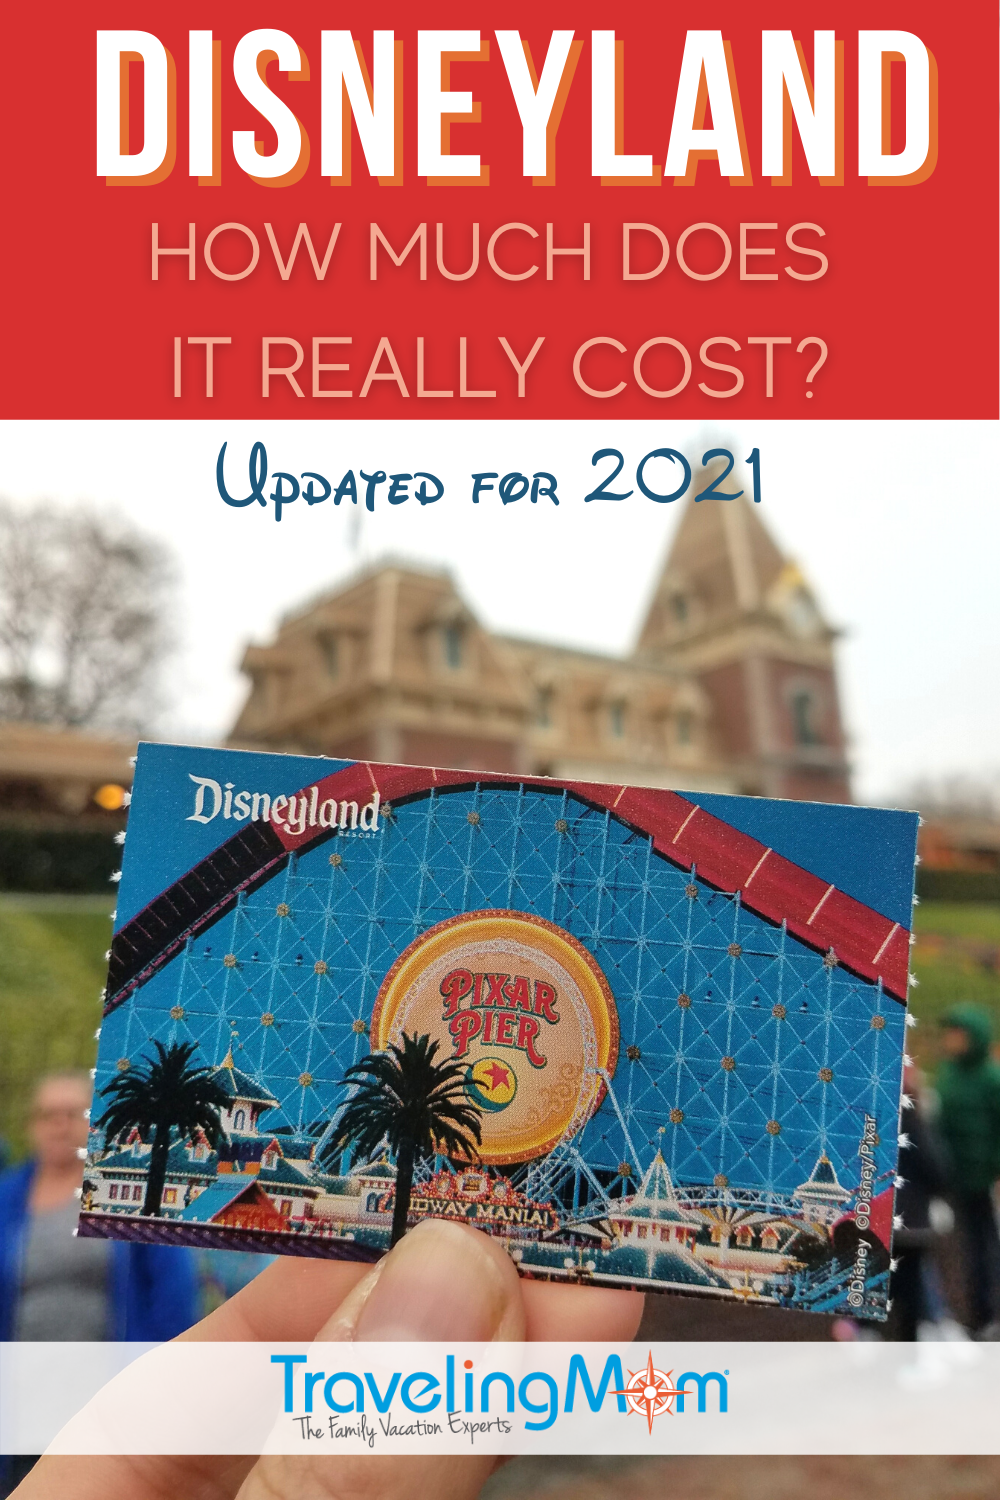 Pin for Disneyland ticket prices post